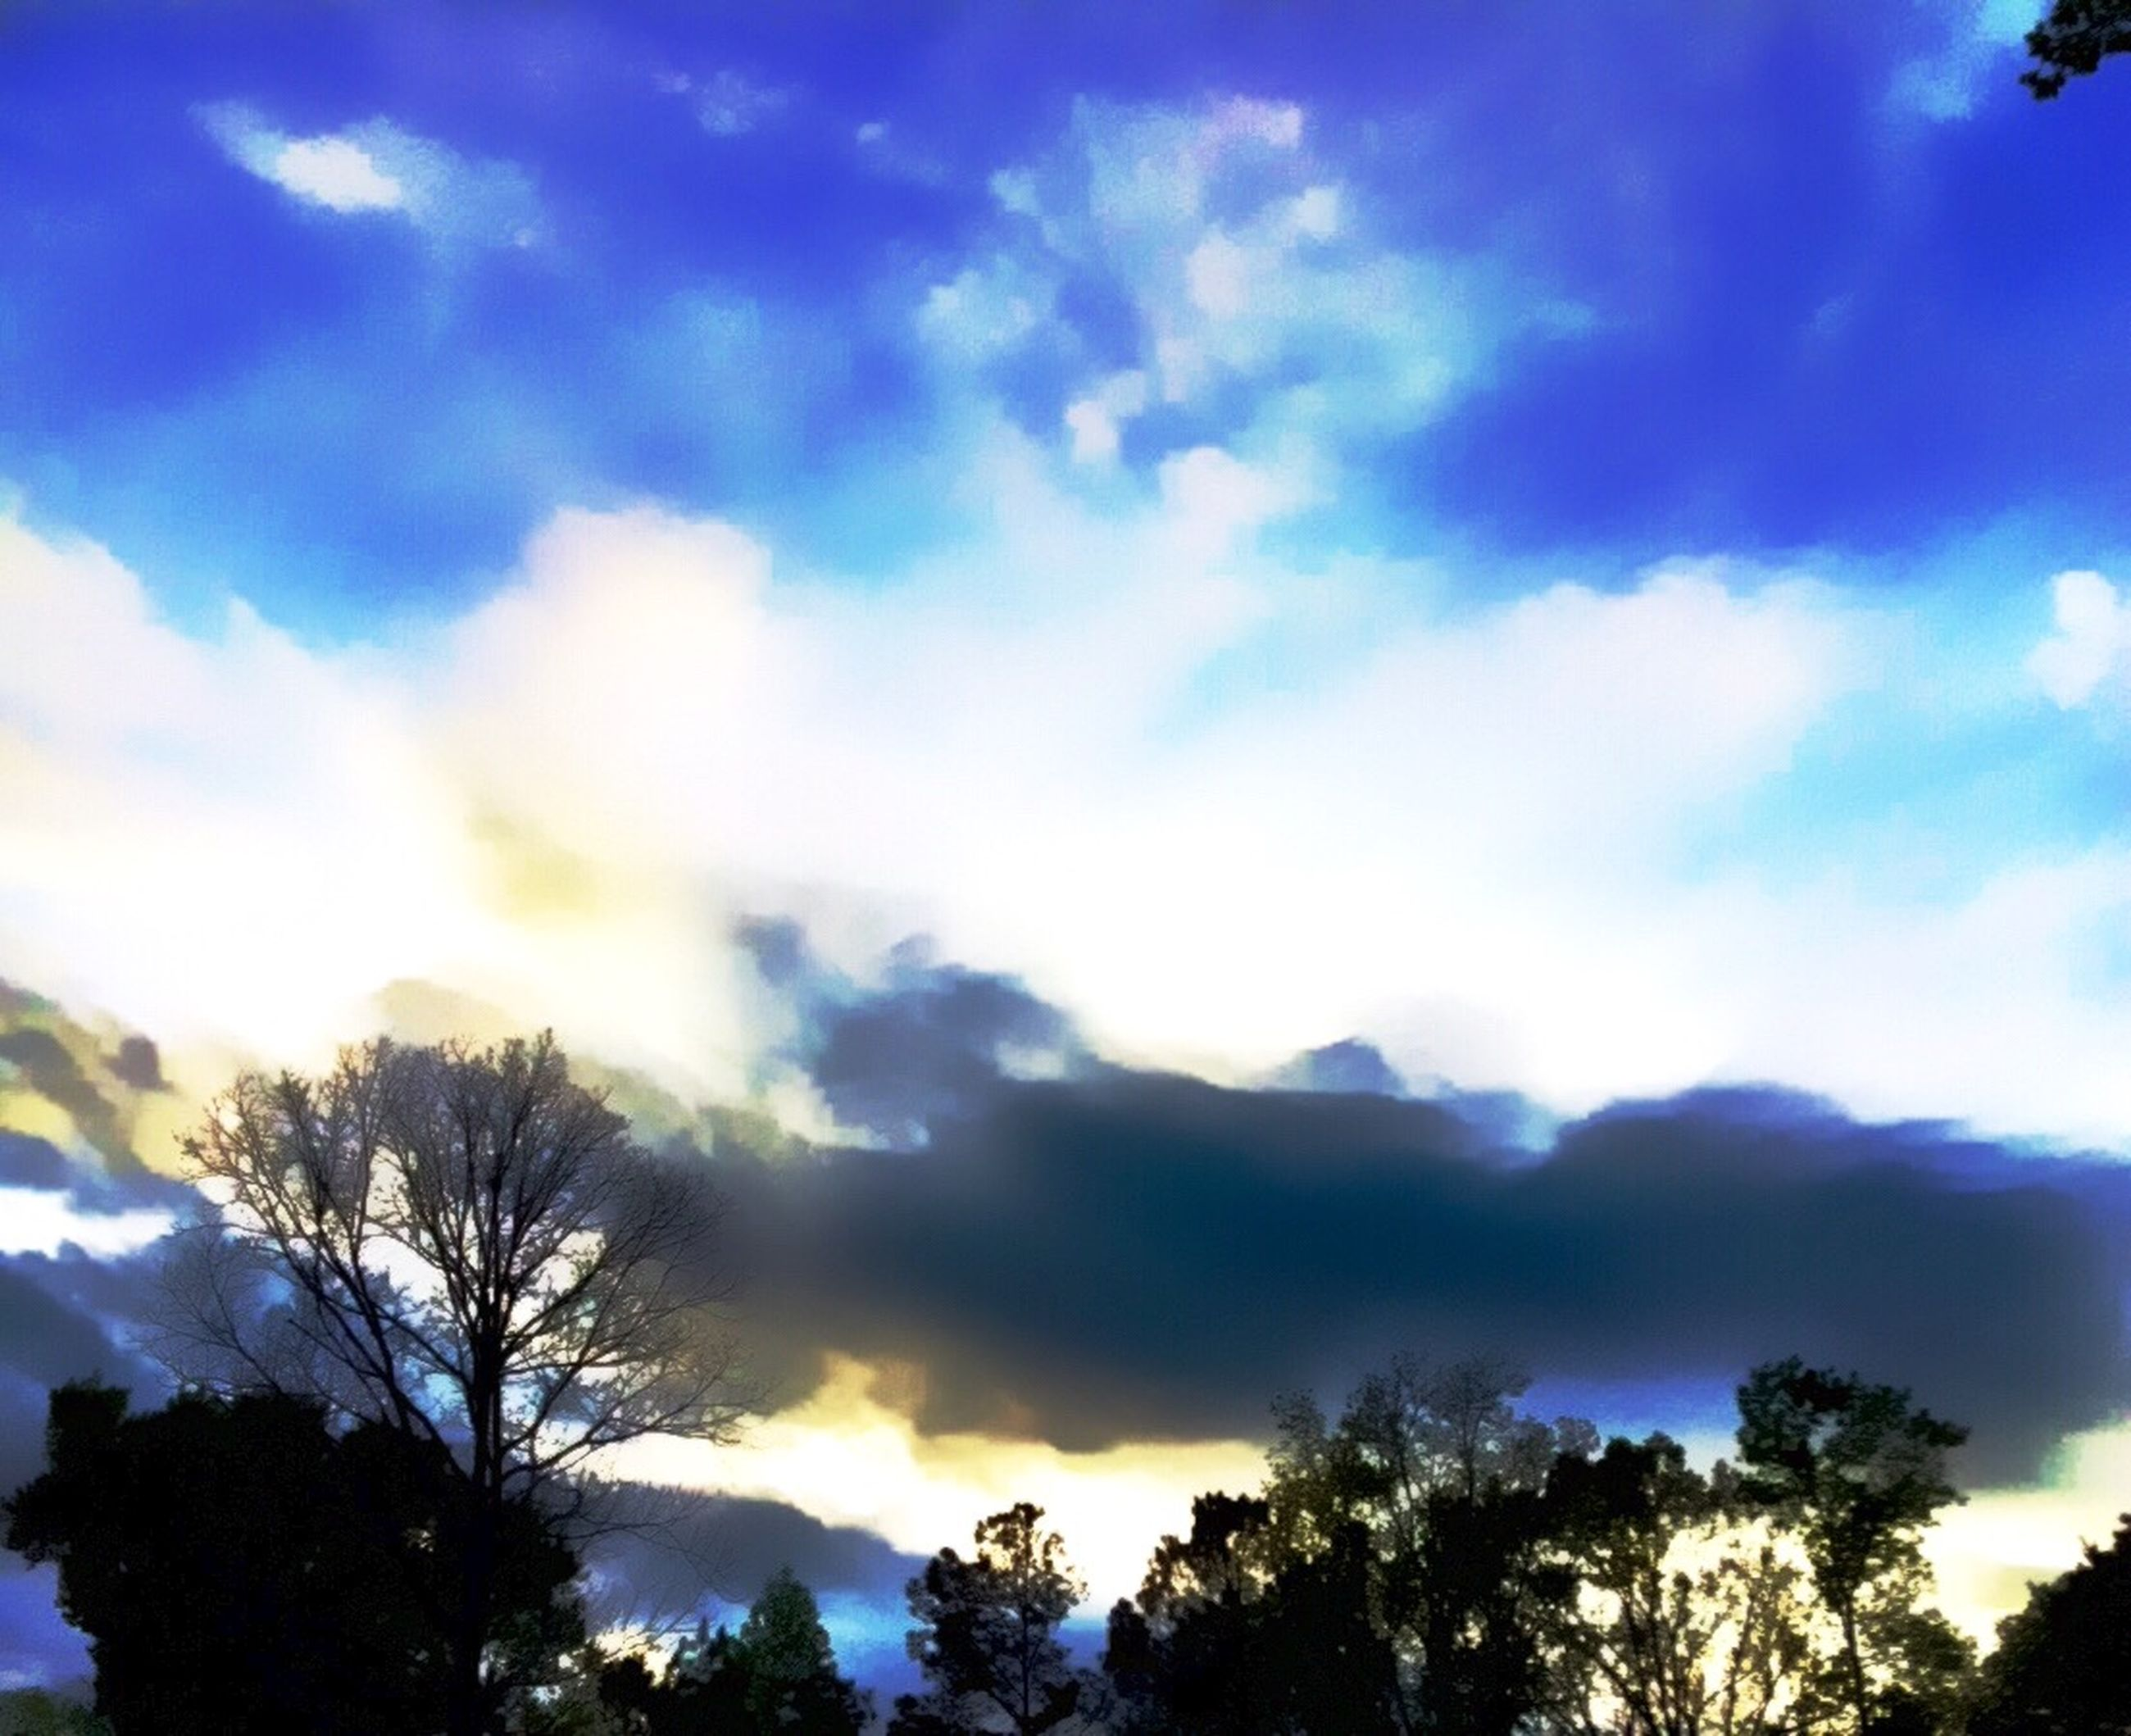 tree, low angle view, sky, silhouette, cloud - sky, beauty in nature, tranquility, scenics, nature, blue, cloud, tranquil scene, cloudy, branch, bare tree, high section, outdoors, no people, growth, sunset